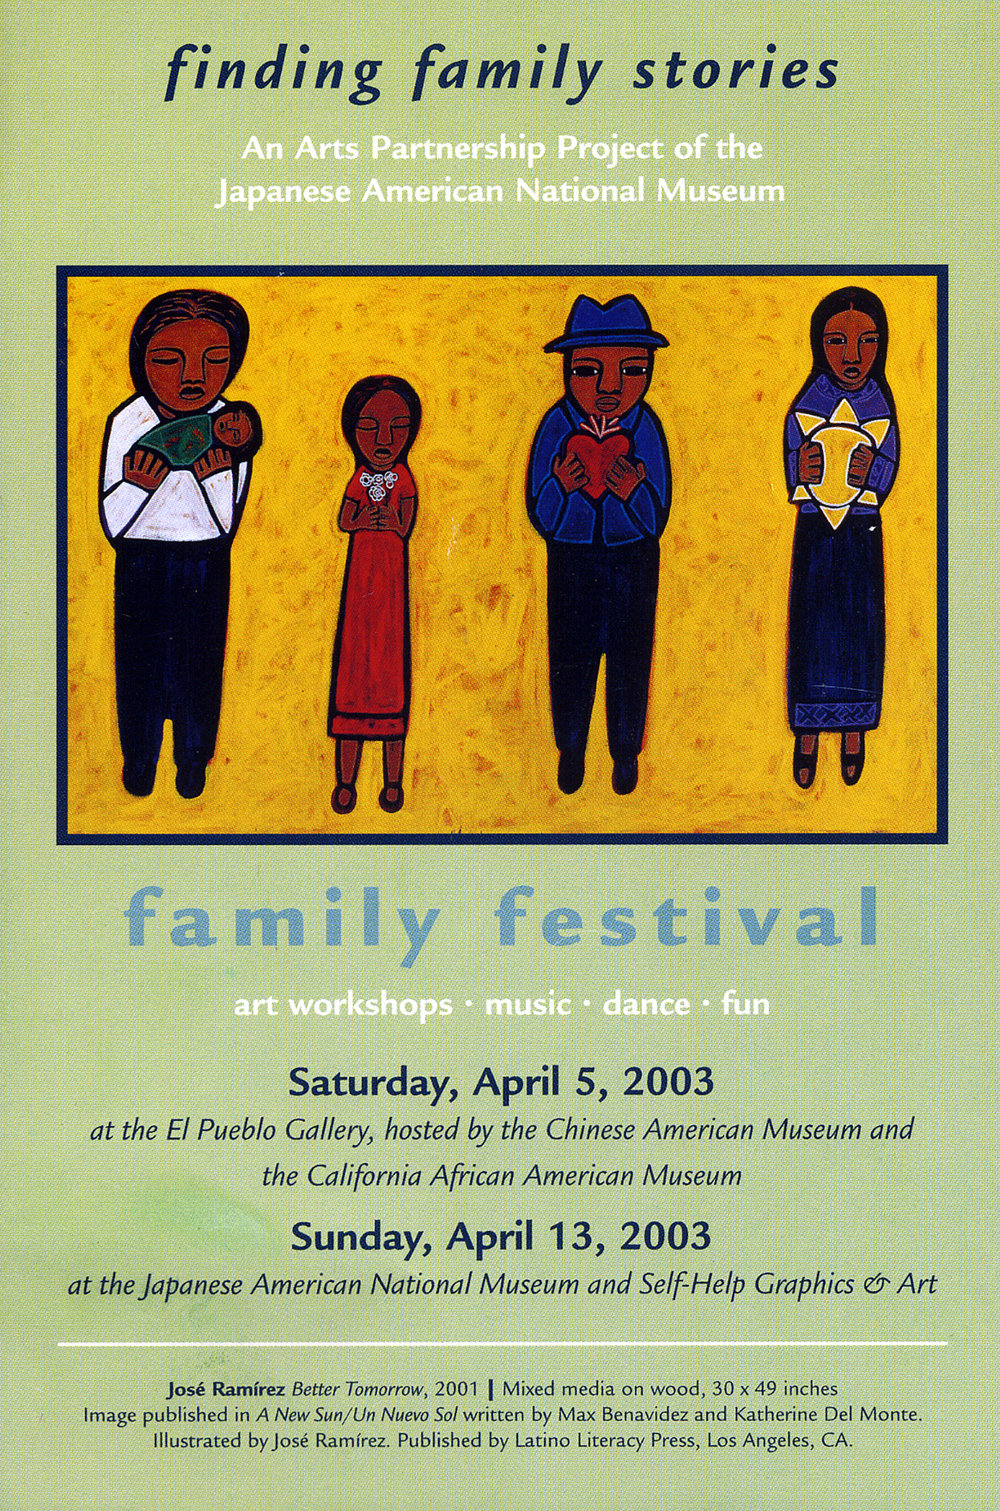 Card for finding family stories, JANM, 2003.